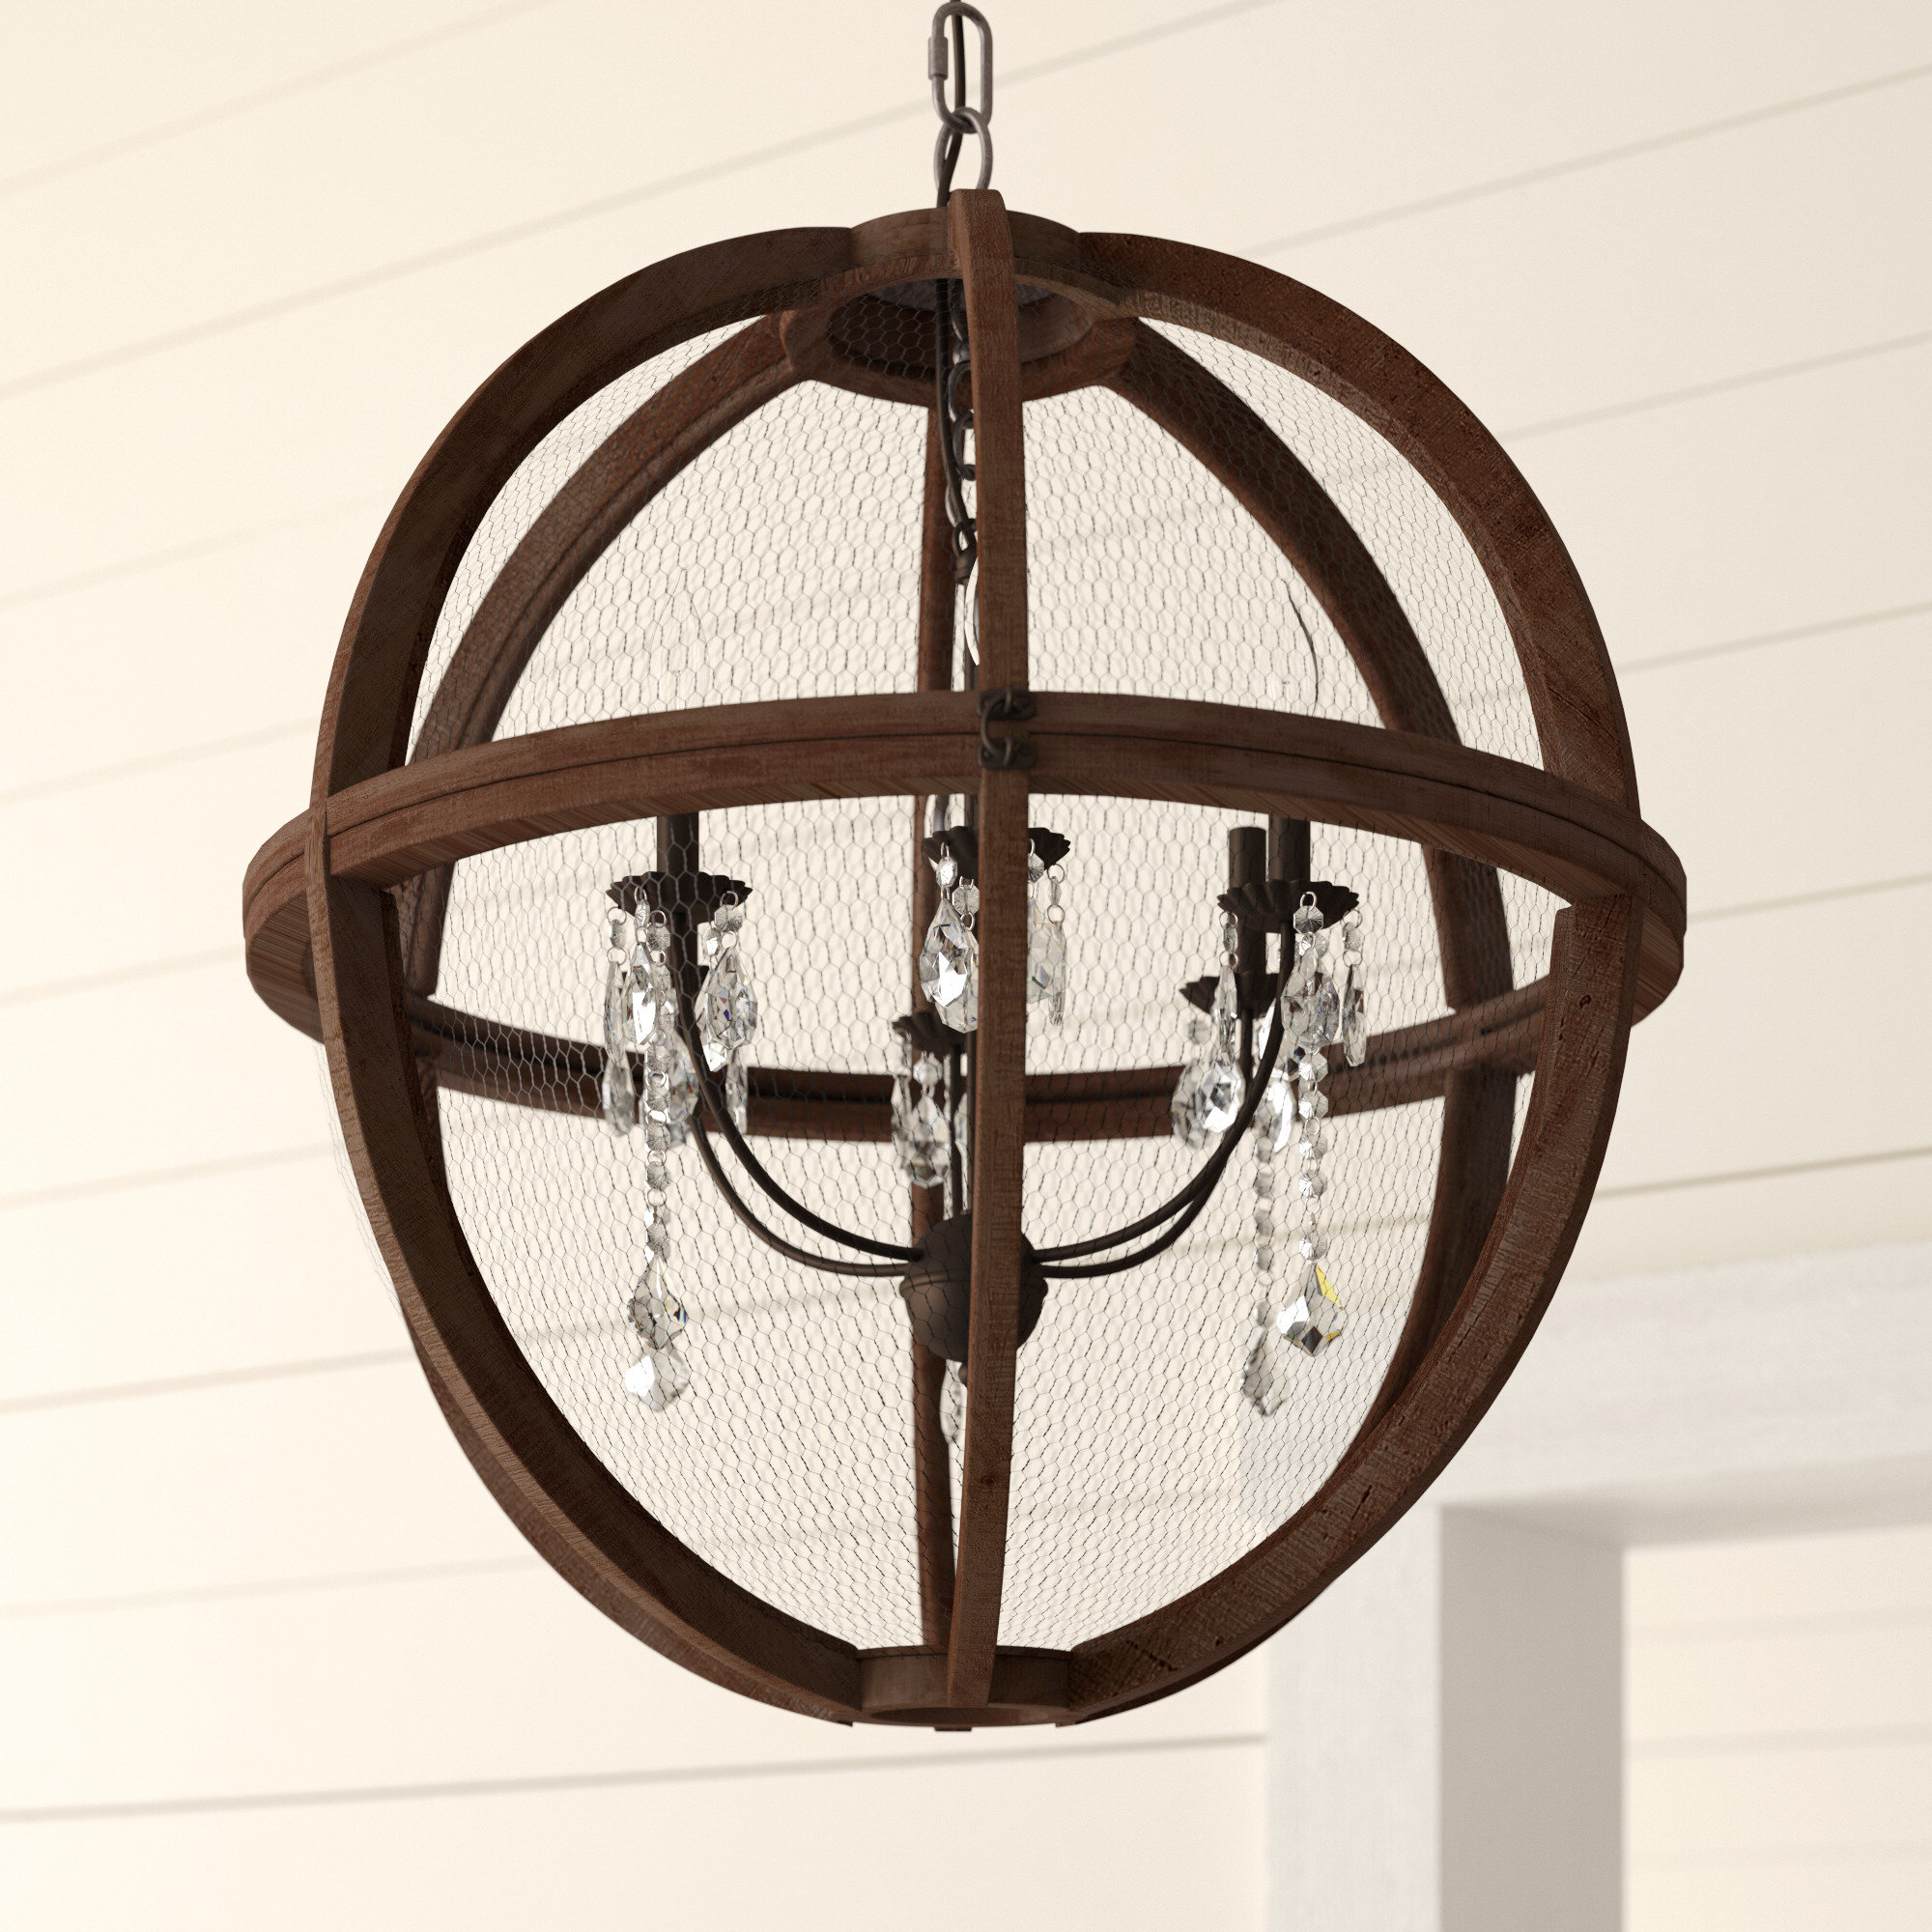 Hendry 4 Light Globe Chandeliers Pertaining To Latest Farmhouse & Rustic Globe Chandeliers (Gallery 22 of 25)